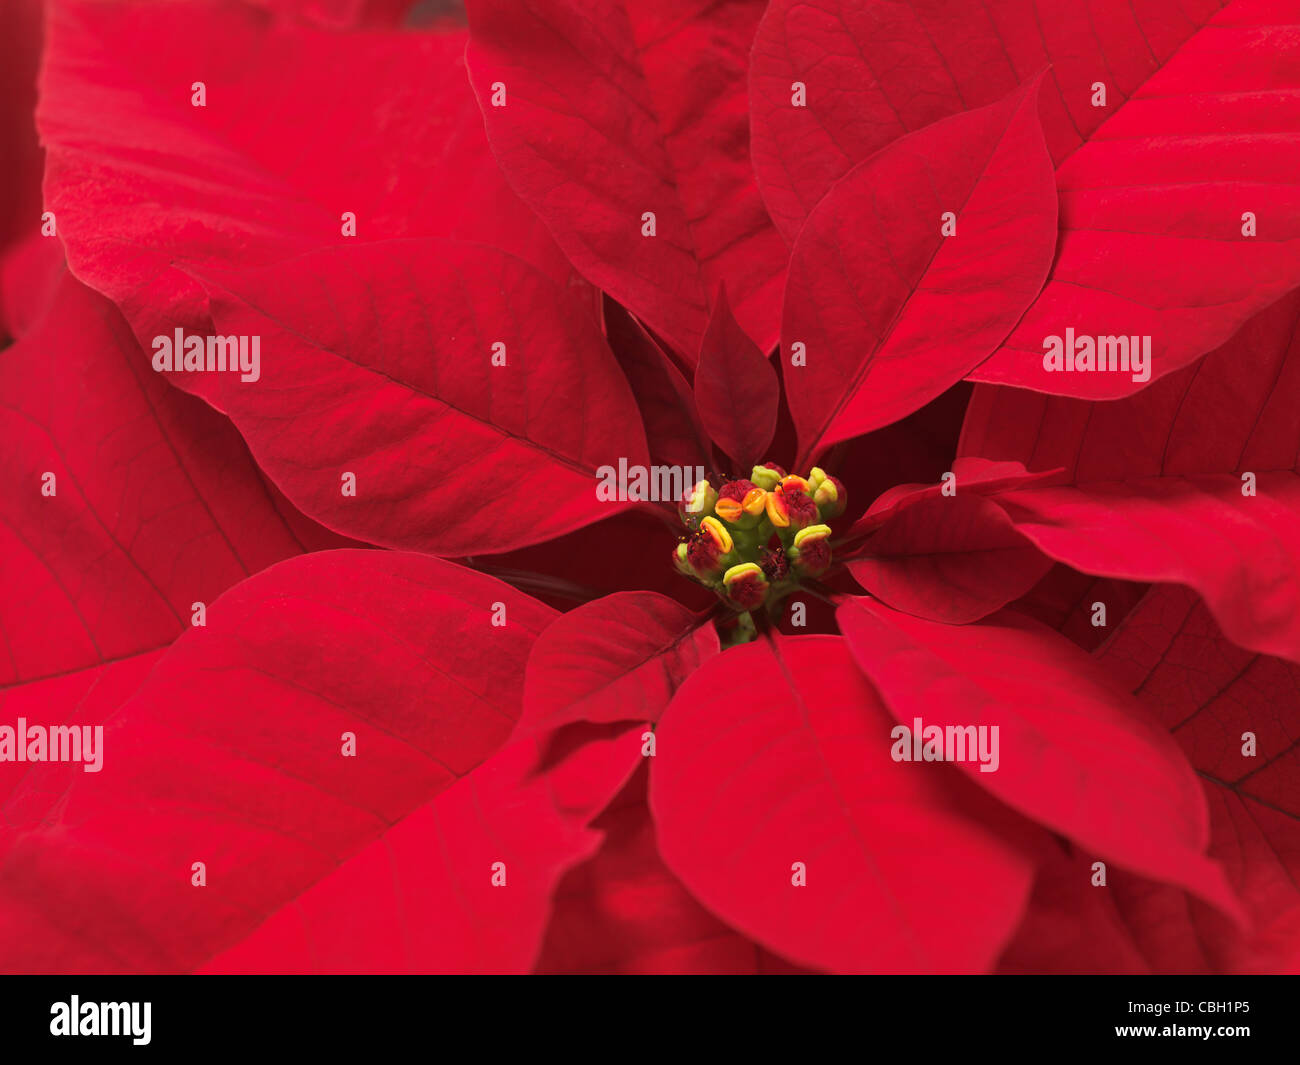 Red Christmas Flower.Closeup Of Poinsettia Red Christmas Flower Leaves Abstract